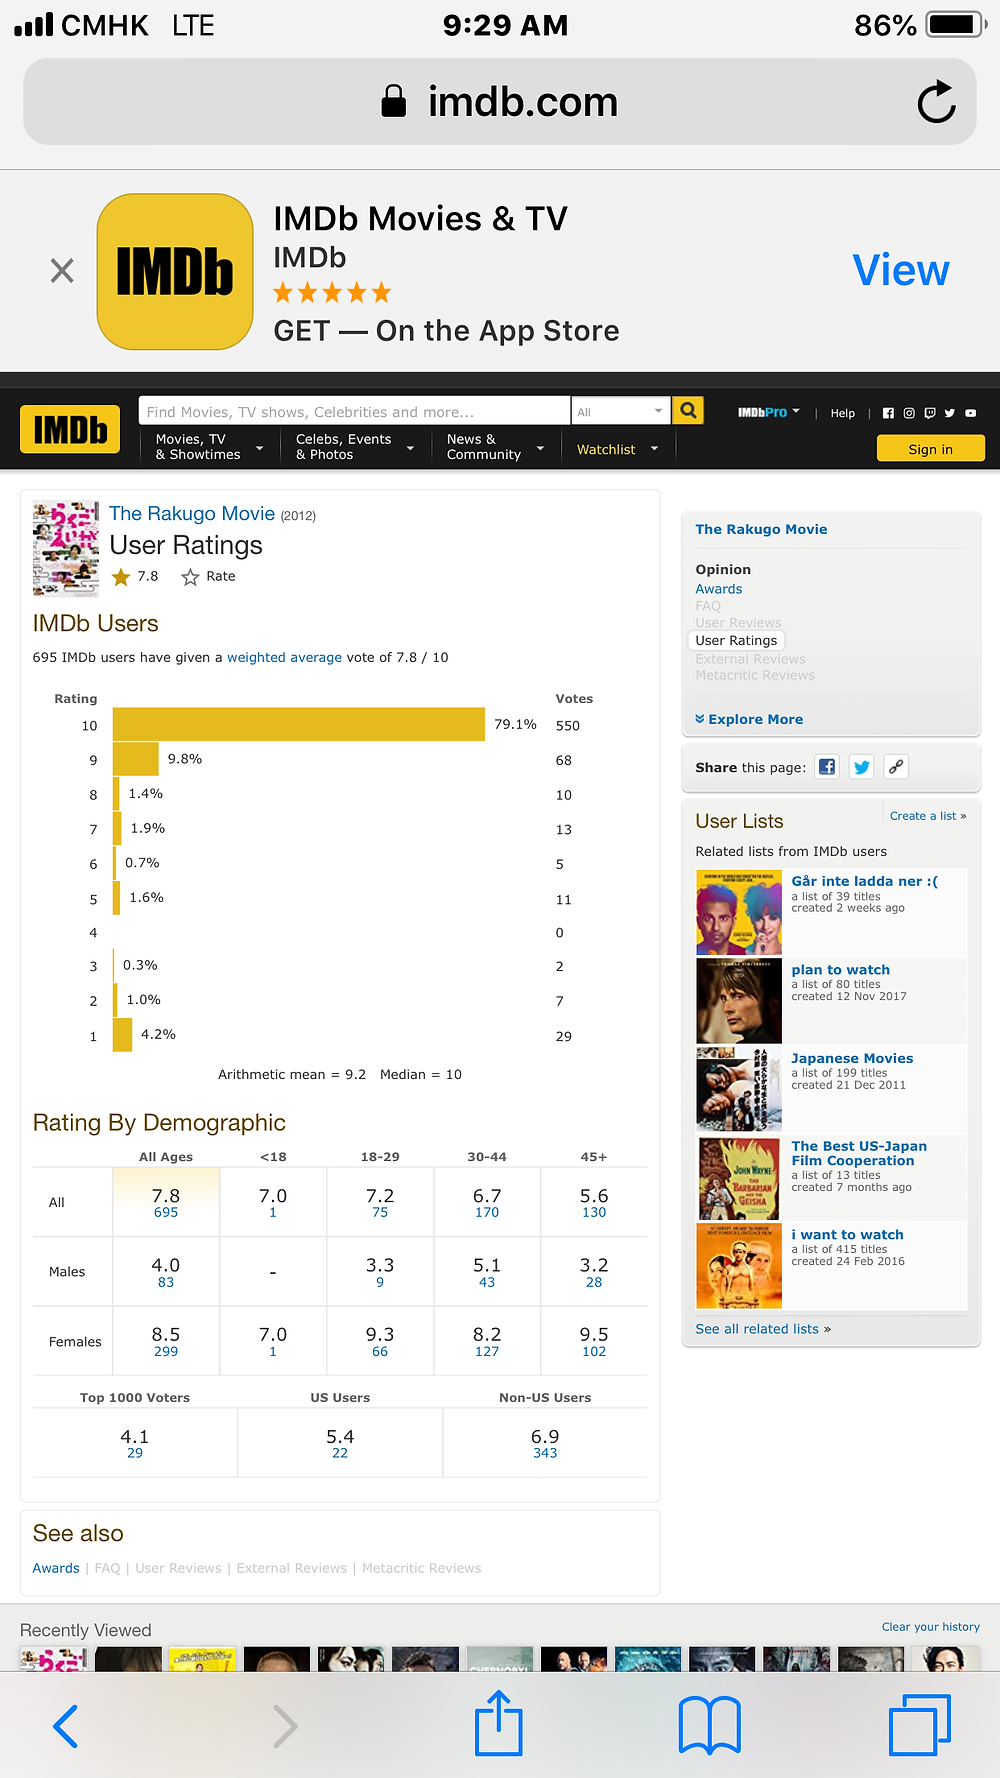 At 9:29 am (China), Aug.9 2019 695 IMDb users voted 7.8 / 10; Top 1000 users voted 4.1; US users voted 5.4; Non US users voted 6.9.